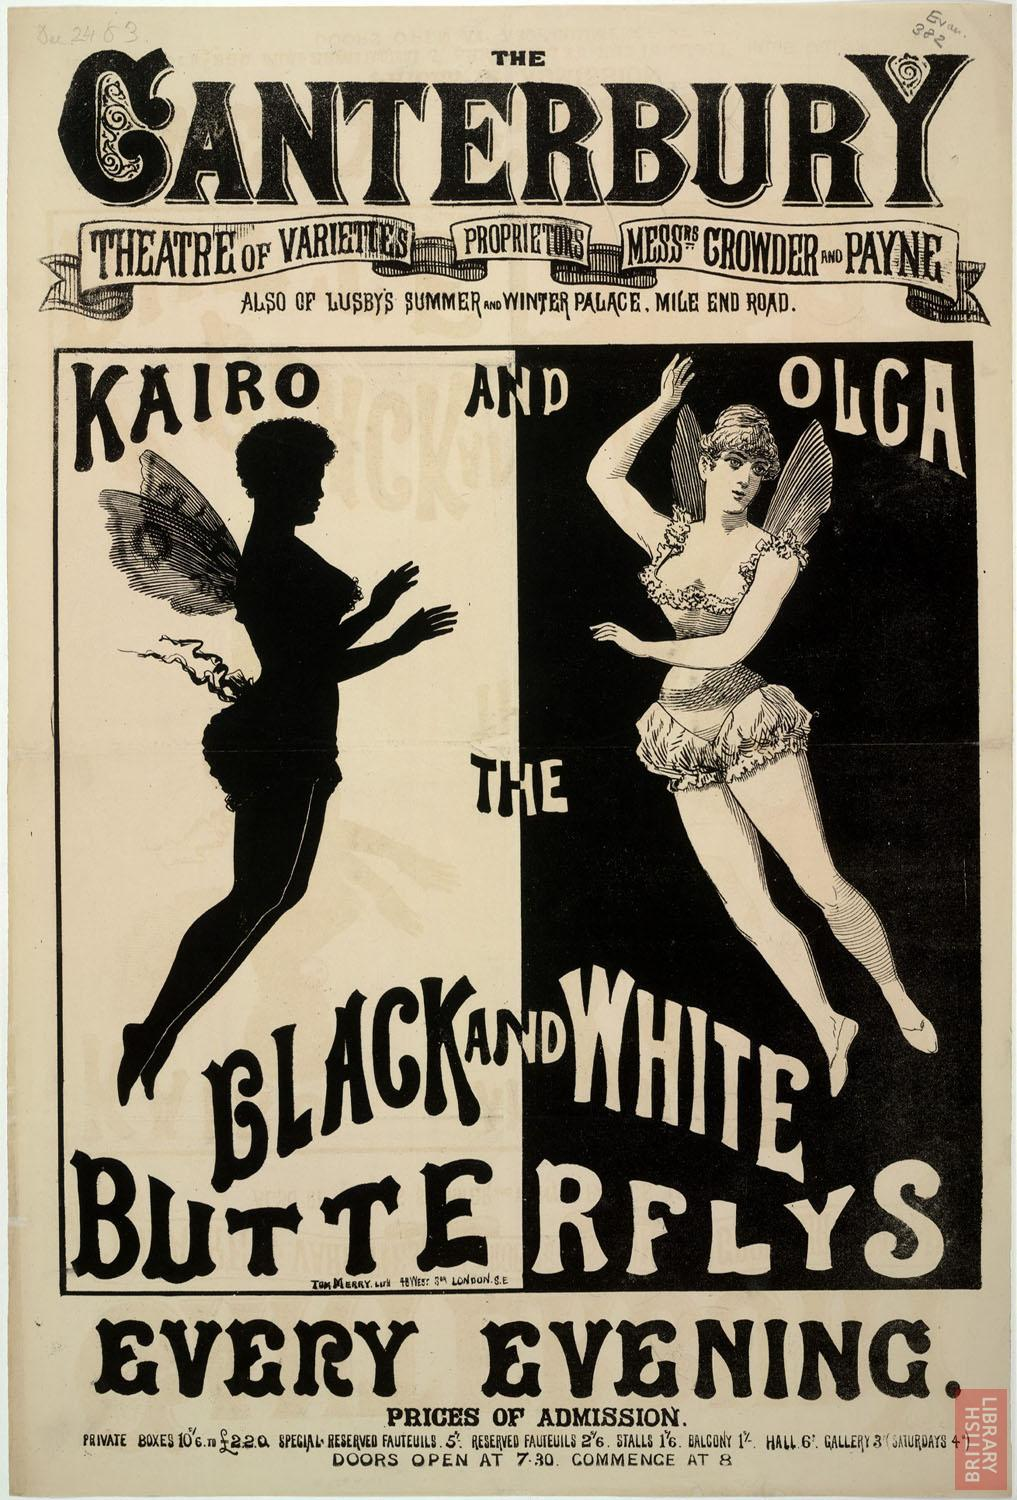 Poster advertising Kairo and Olga, the black and white butterflys, at the Canterbury Theatre of Varieties, London